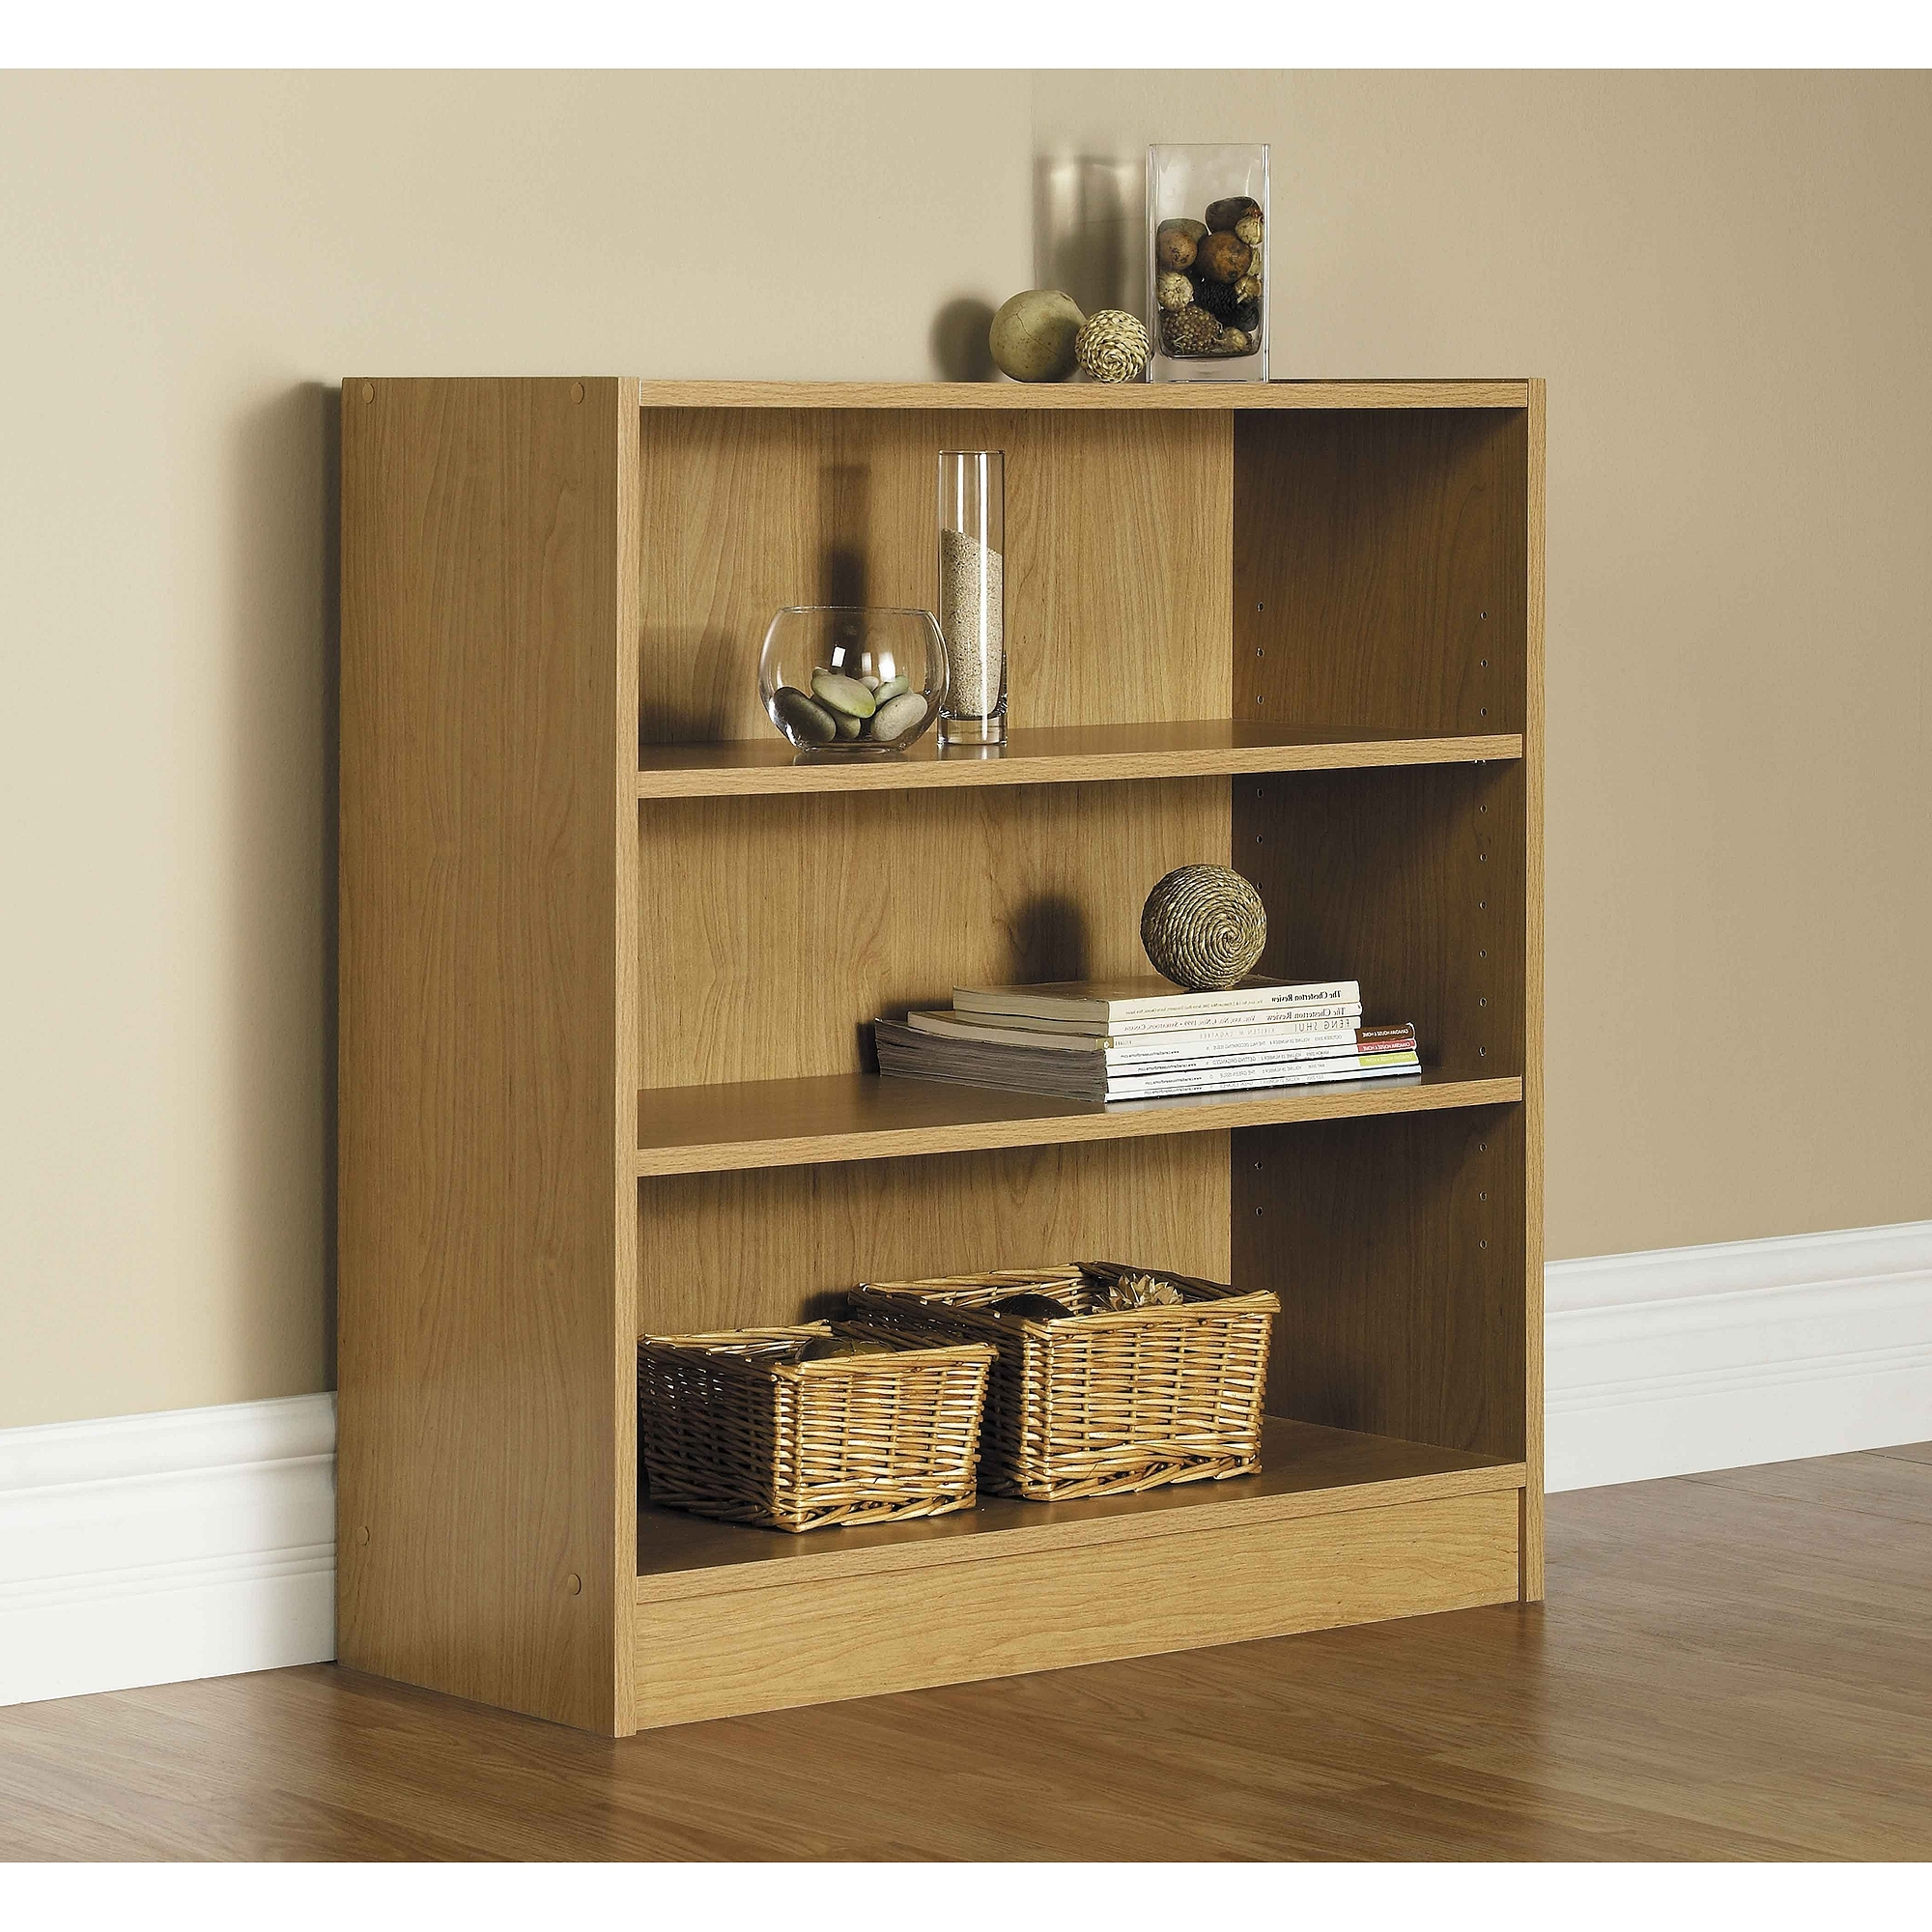 Latest 3 Shelf Bookcases Intended For Orion Wide 3 Shelf Standard Bookcase, Multiple Finishes – Walmart (View 14 of 15)